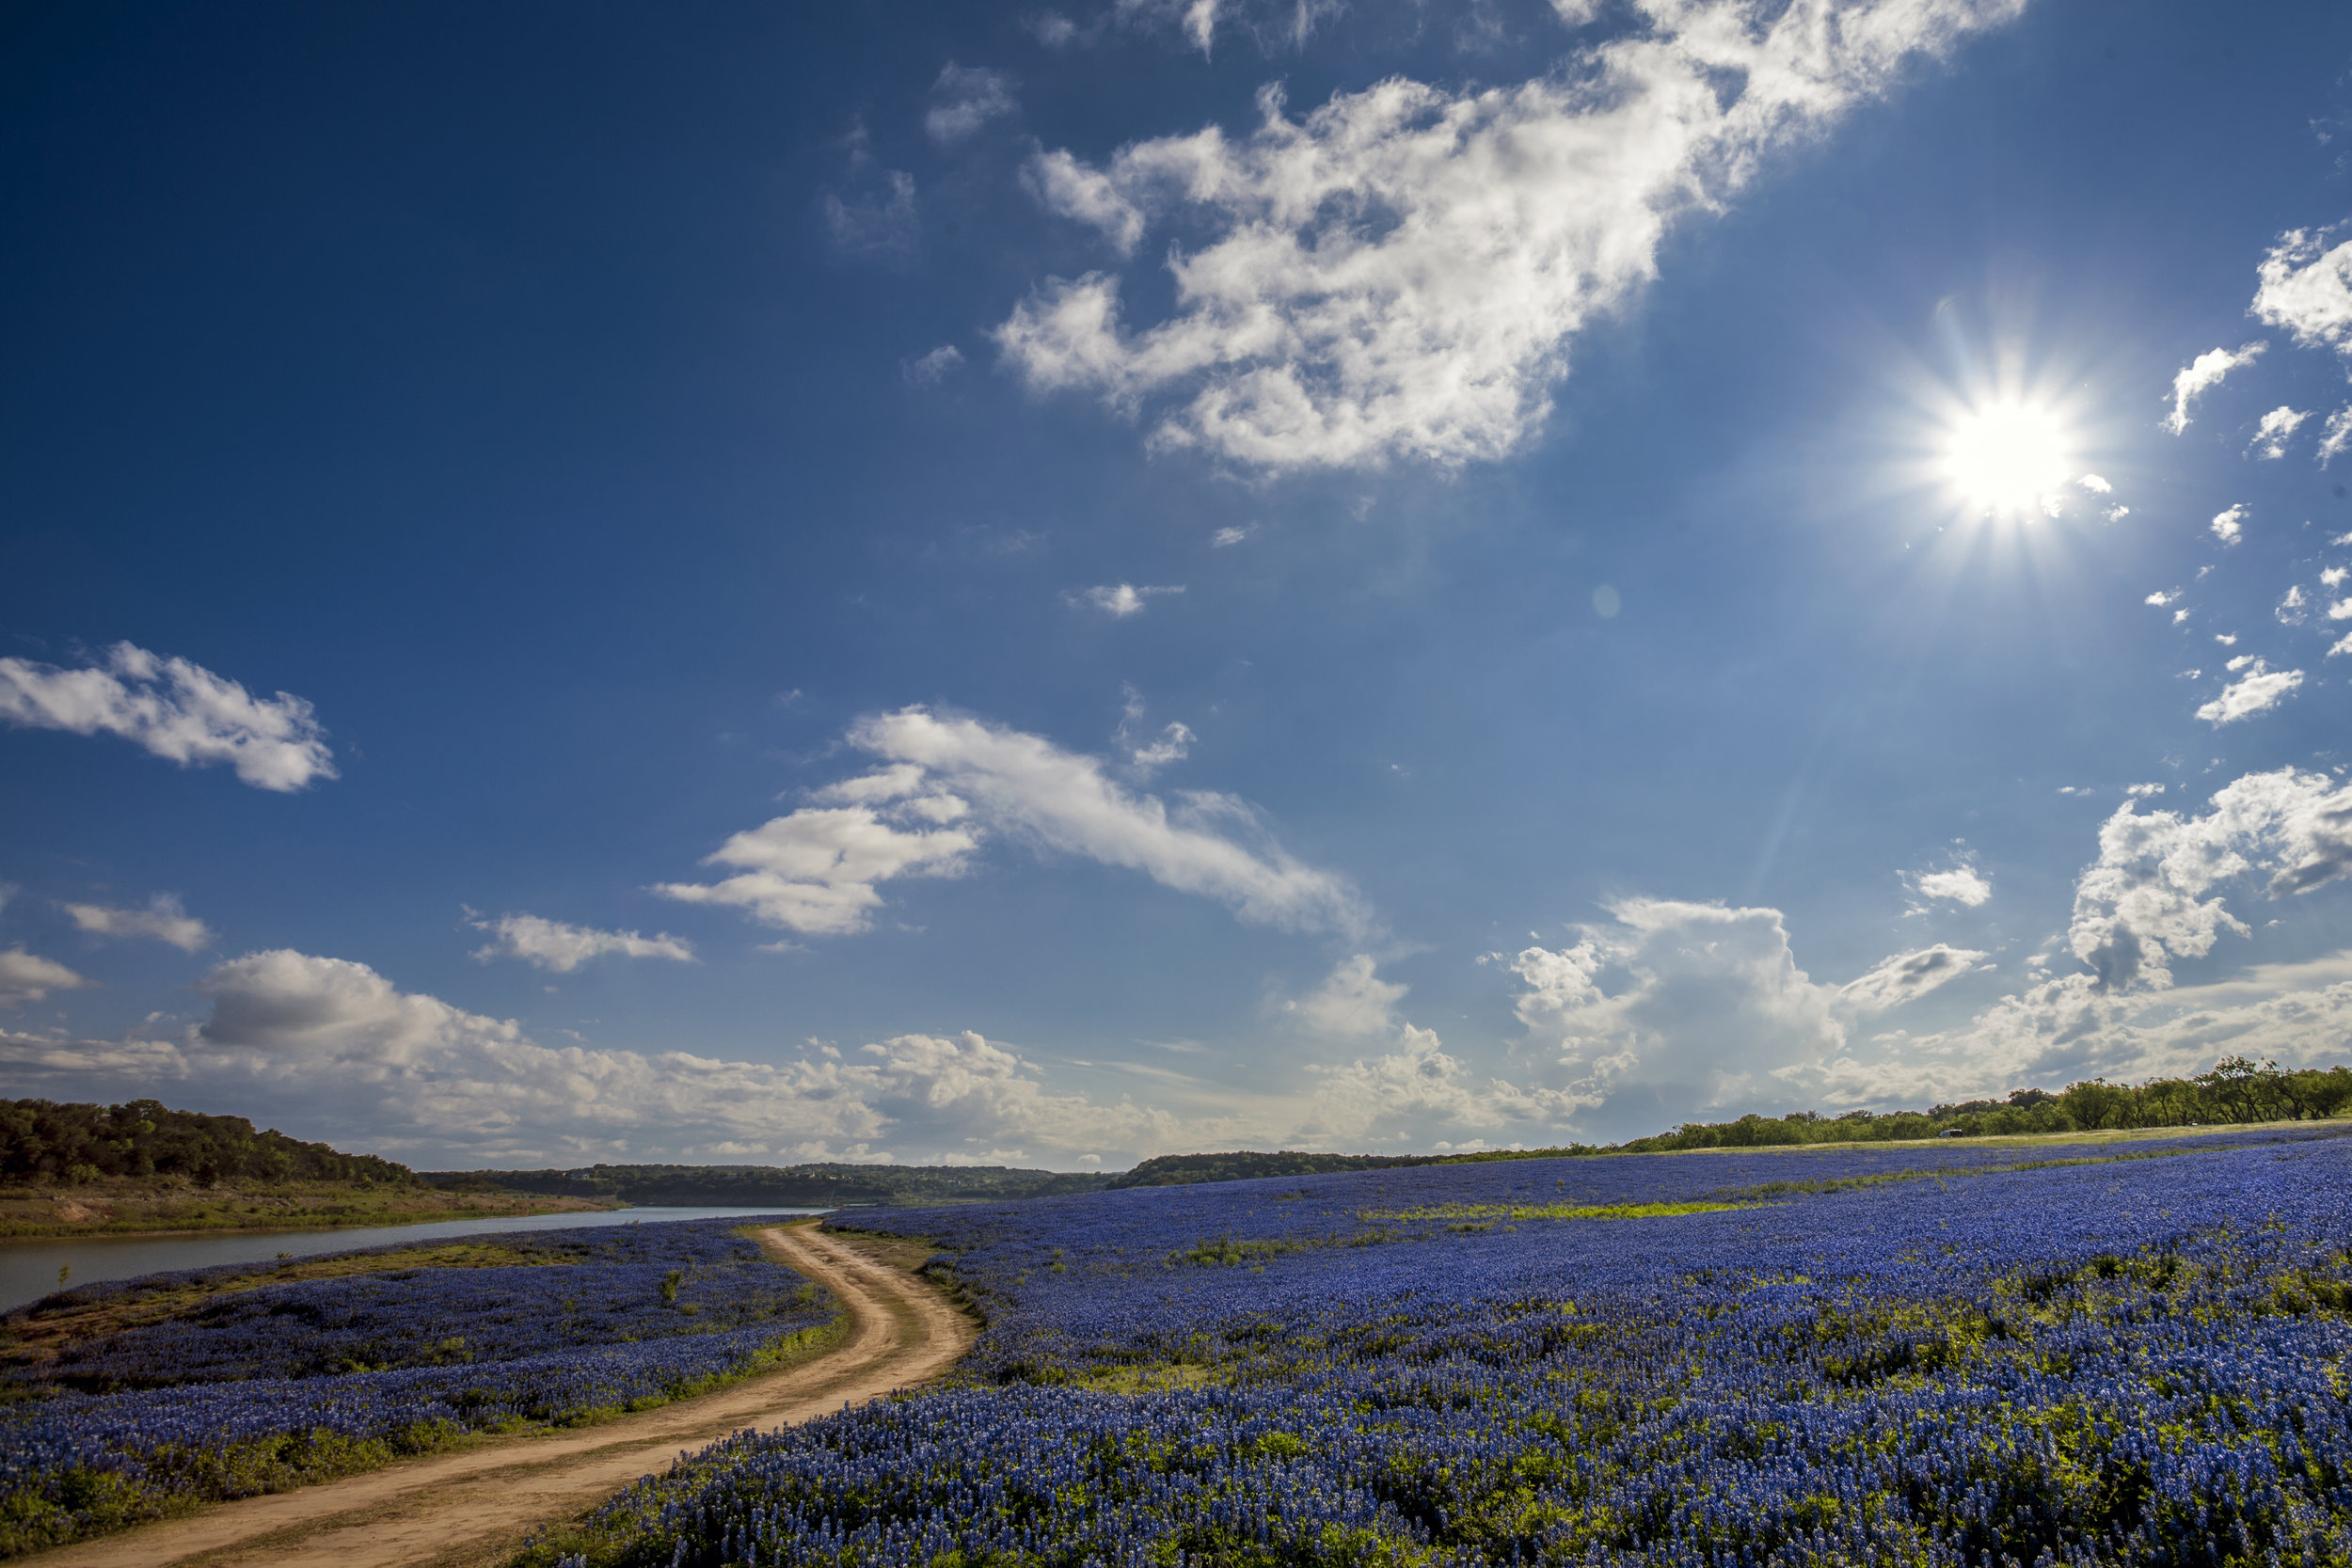 2017 texas bluebonnet season best fields locations places see where photography tour tours workshop workshops Hill Country Austin Things to do